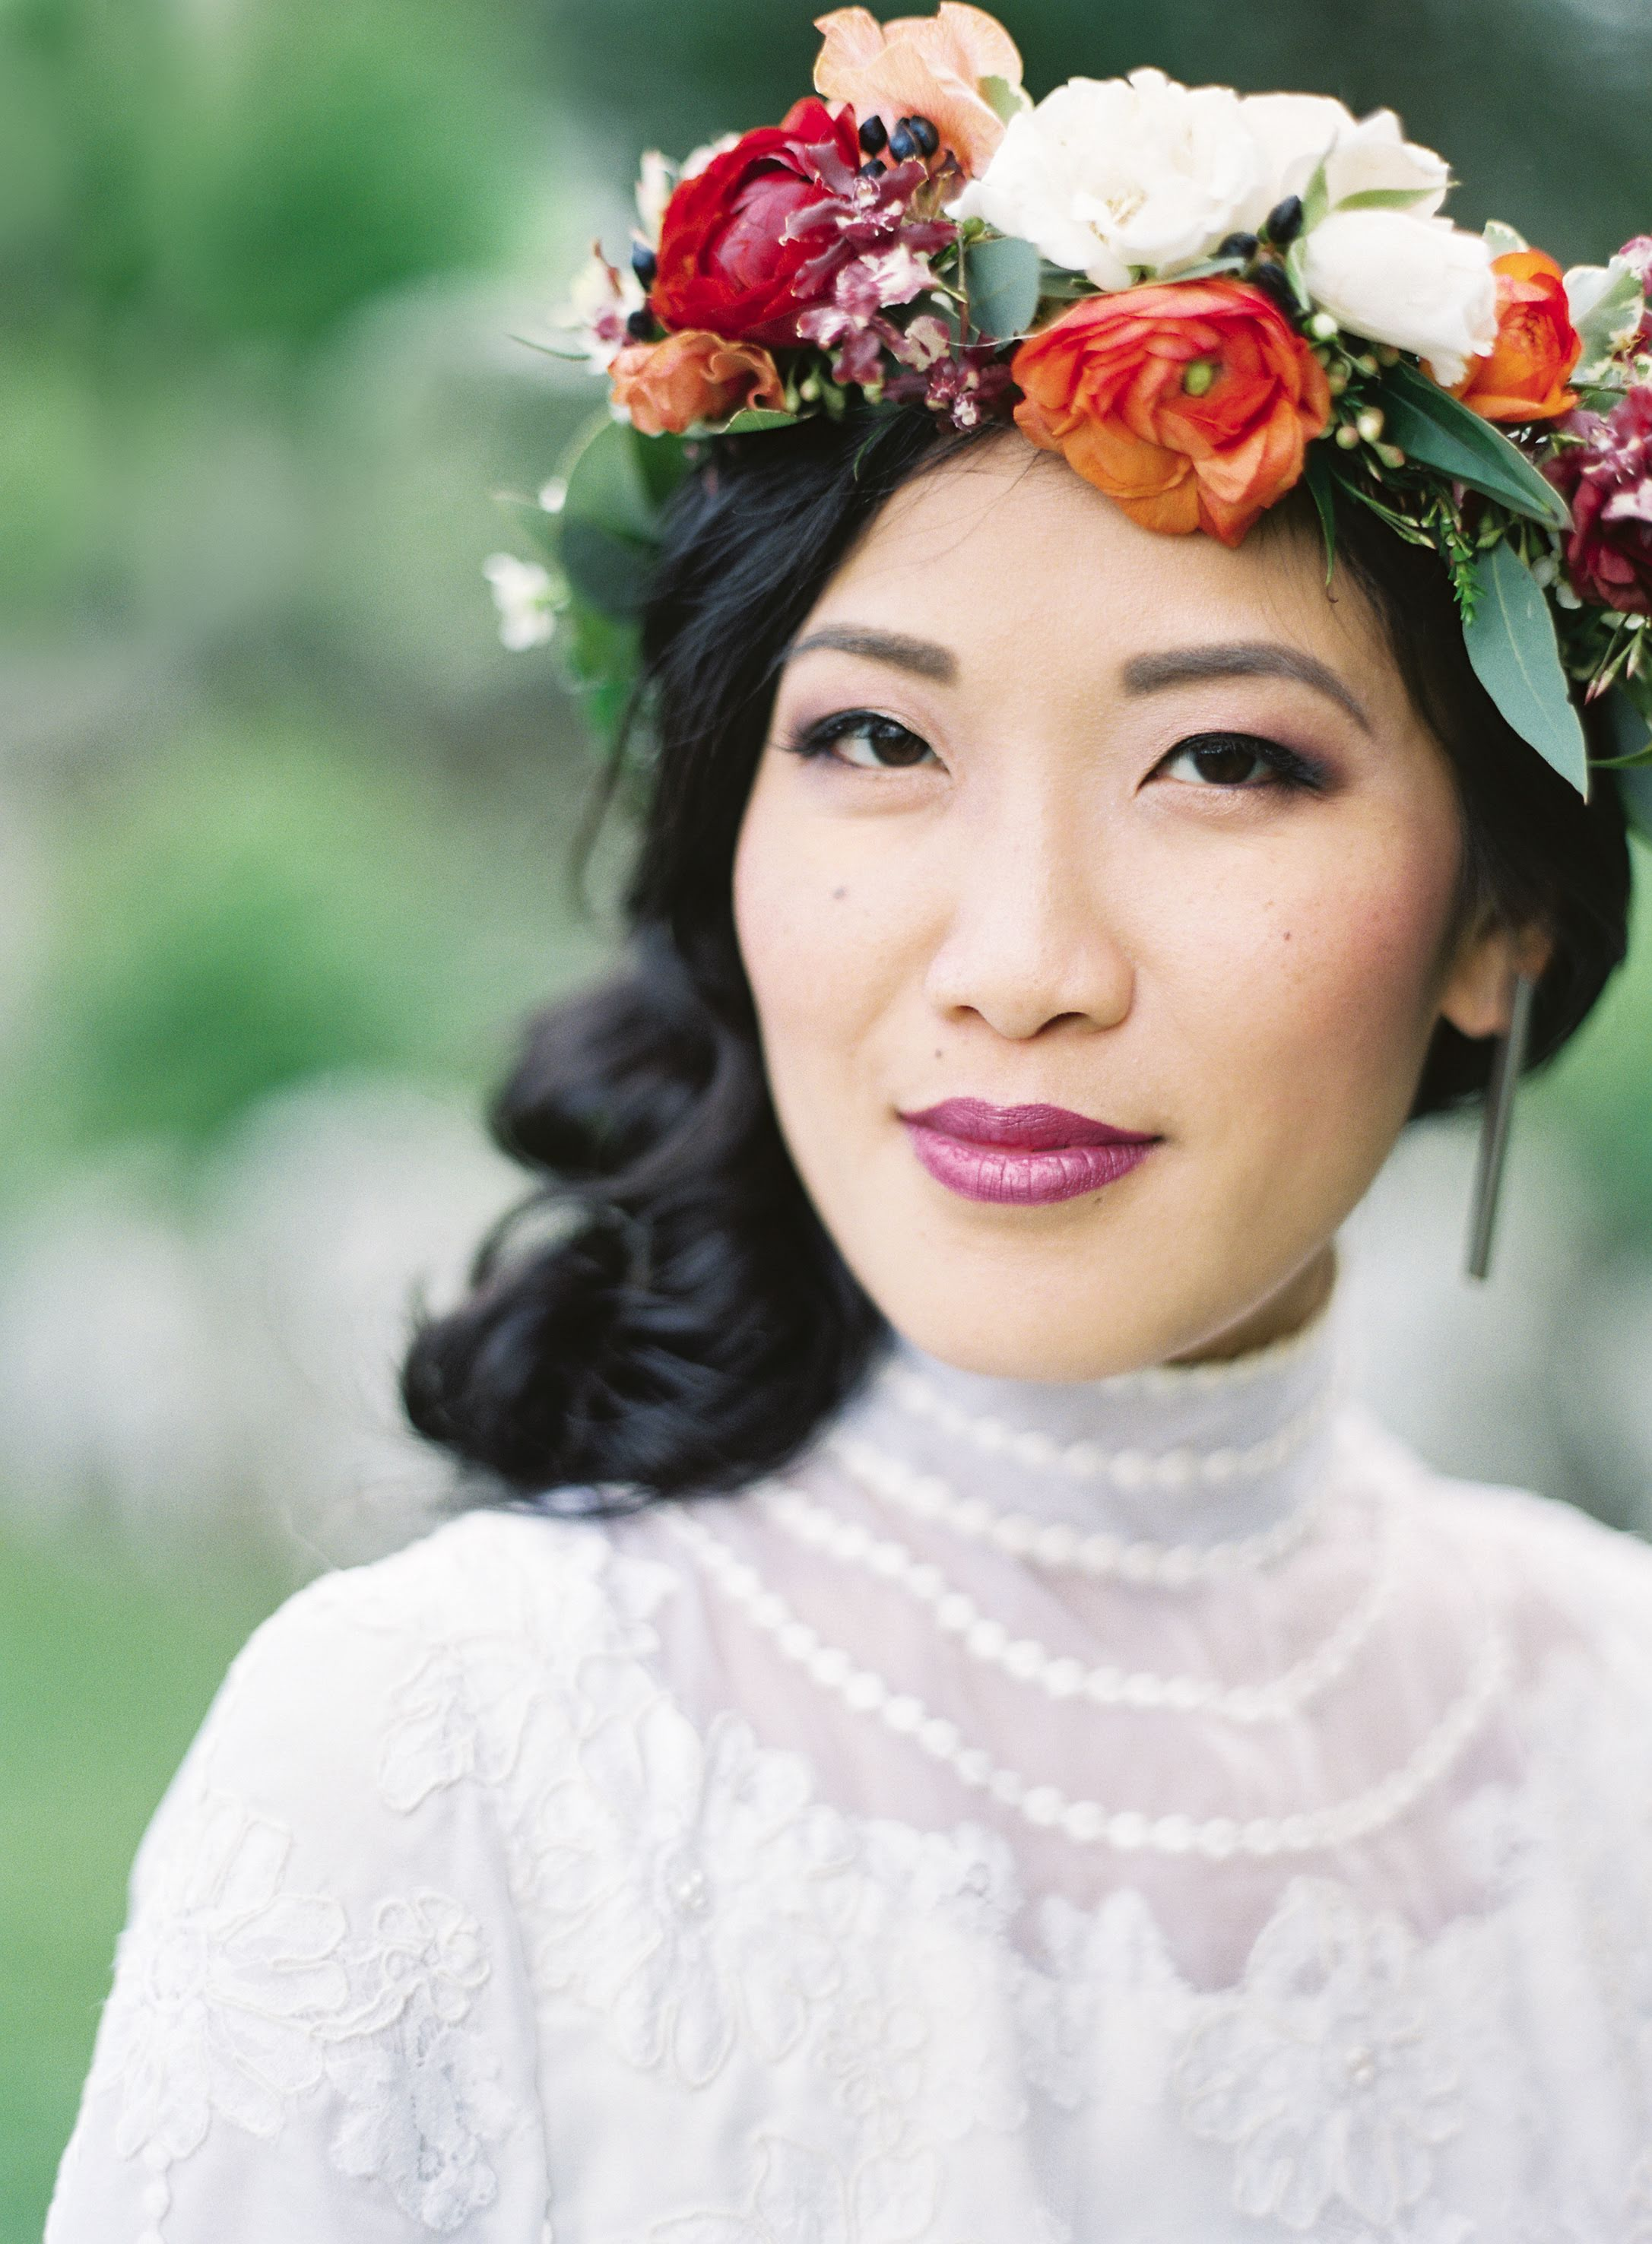 Portrait of bride wearing floral crown